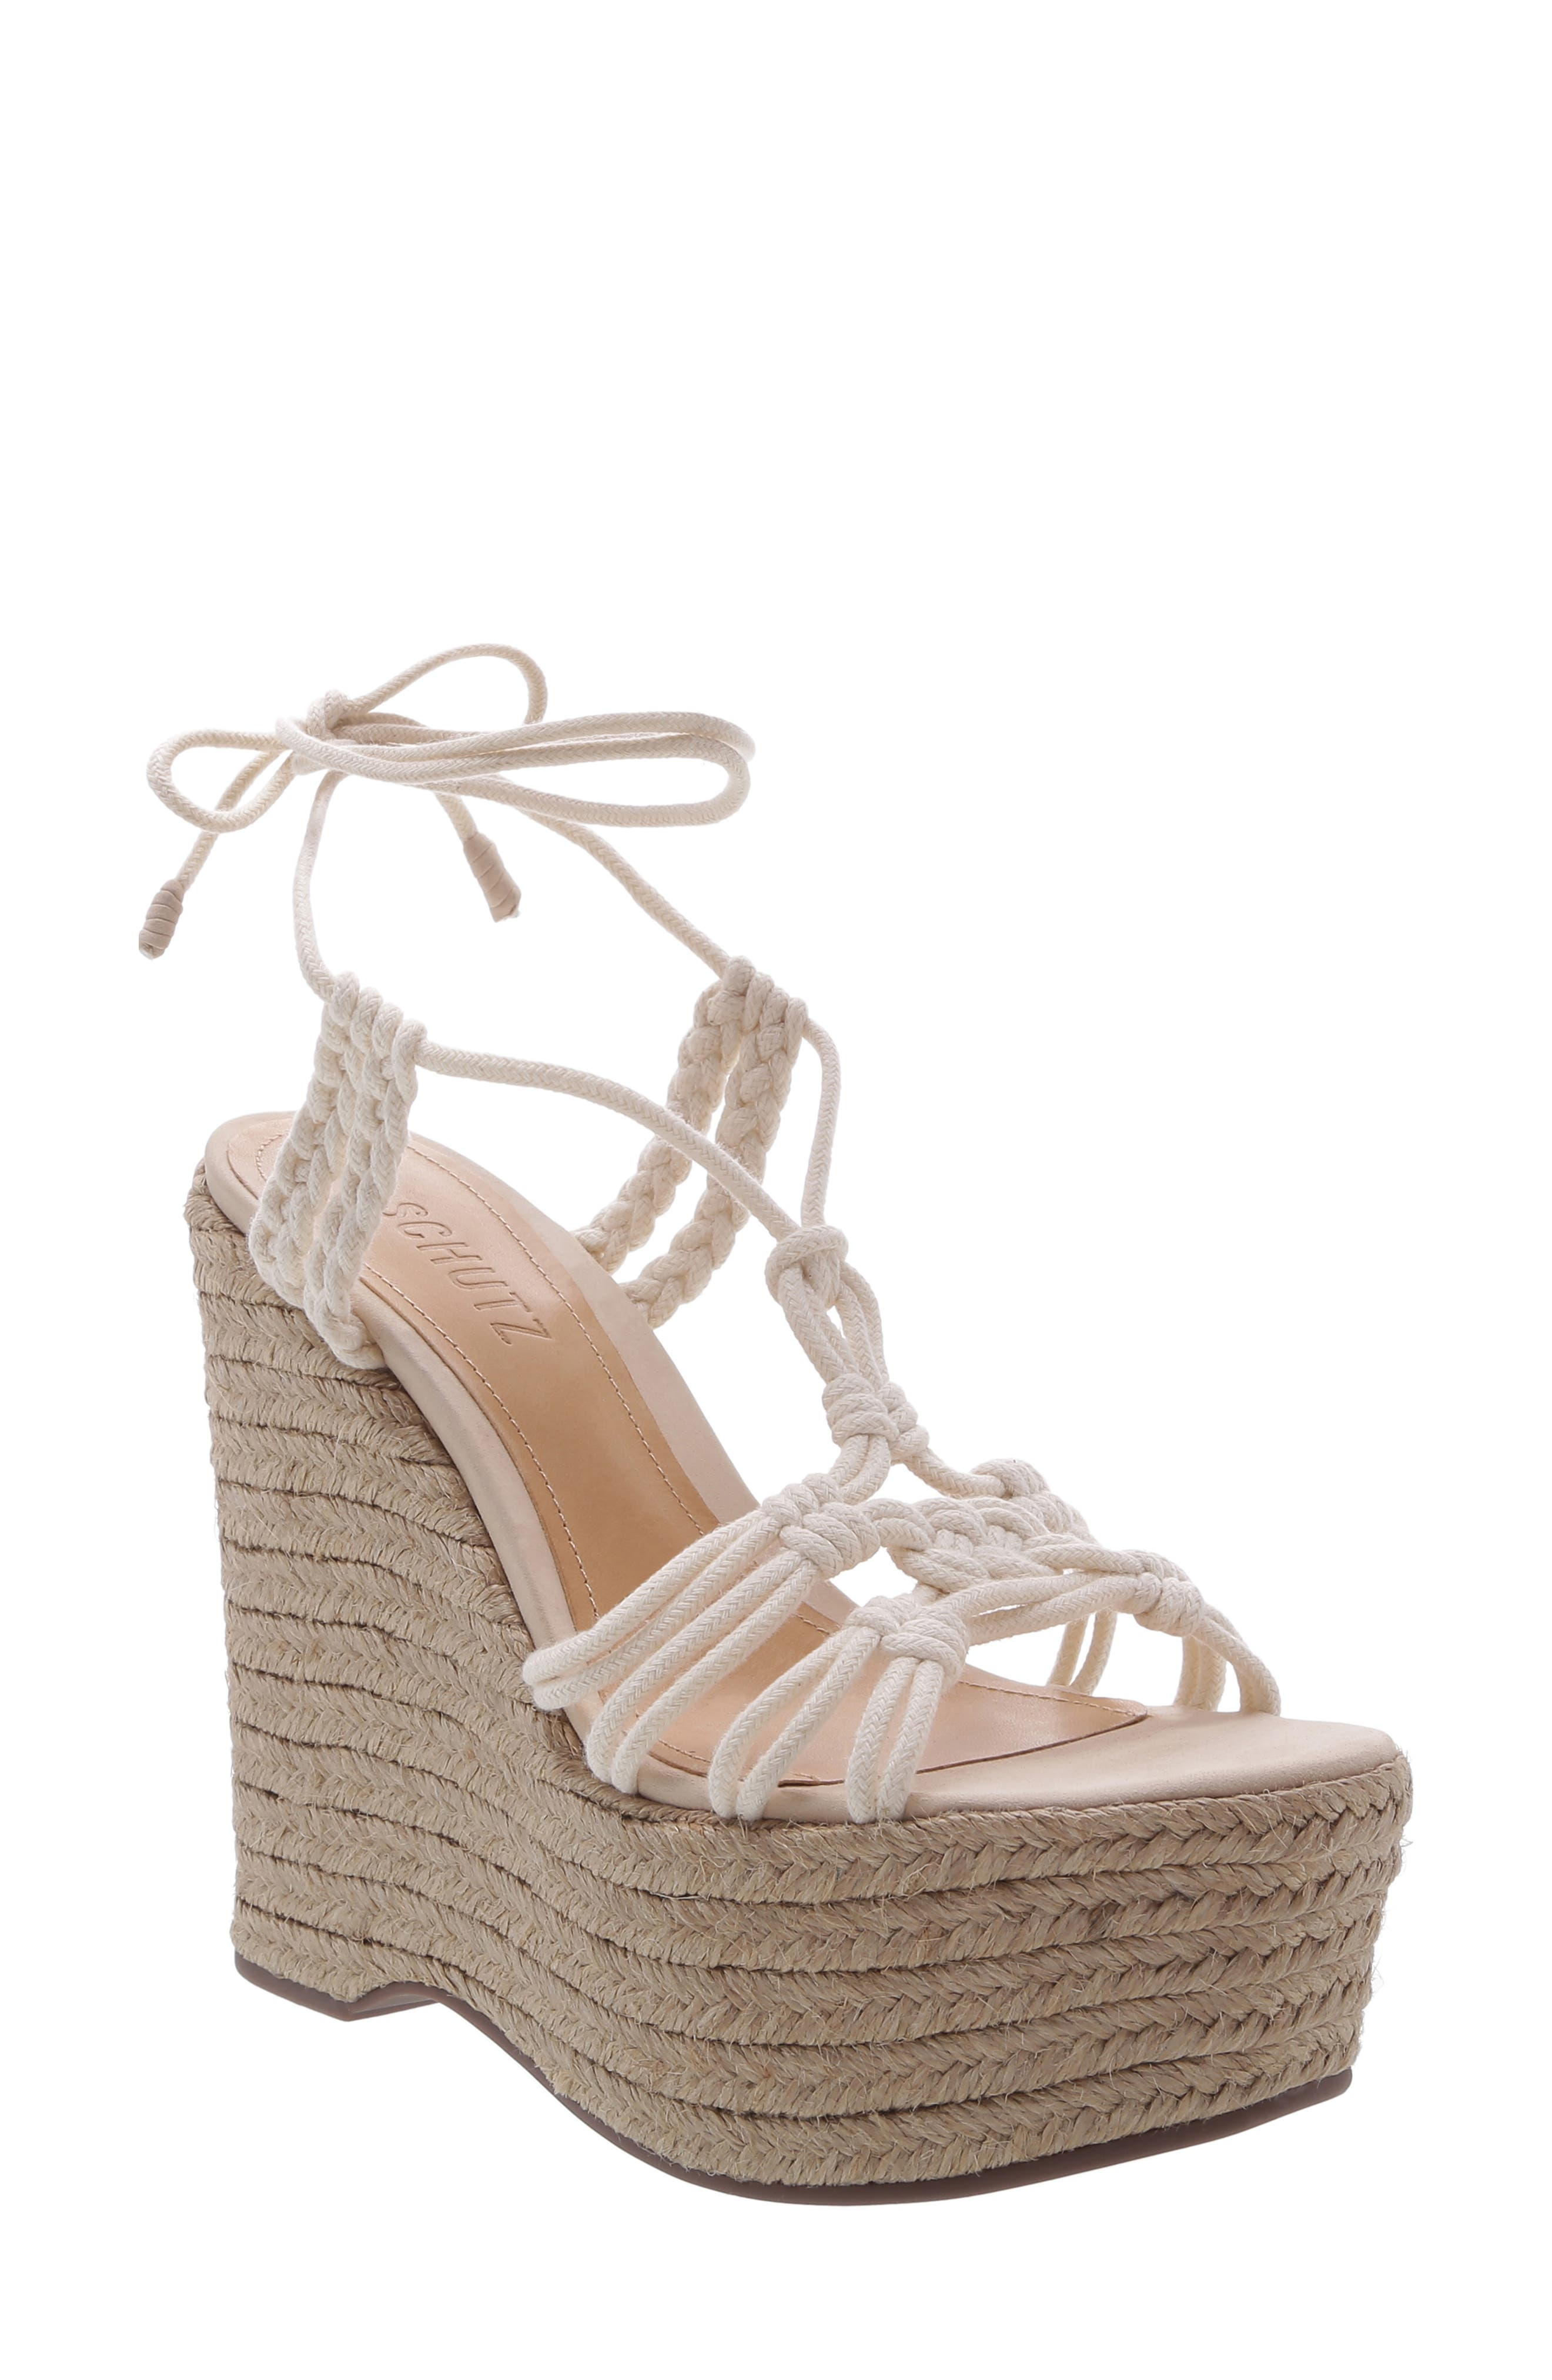 Macris Platform Wedge Sandal by Schutz